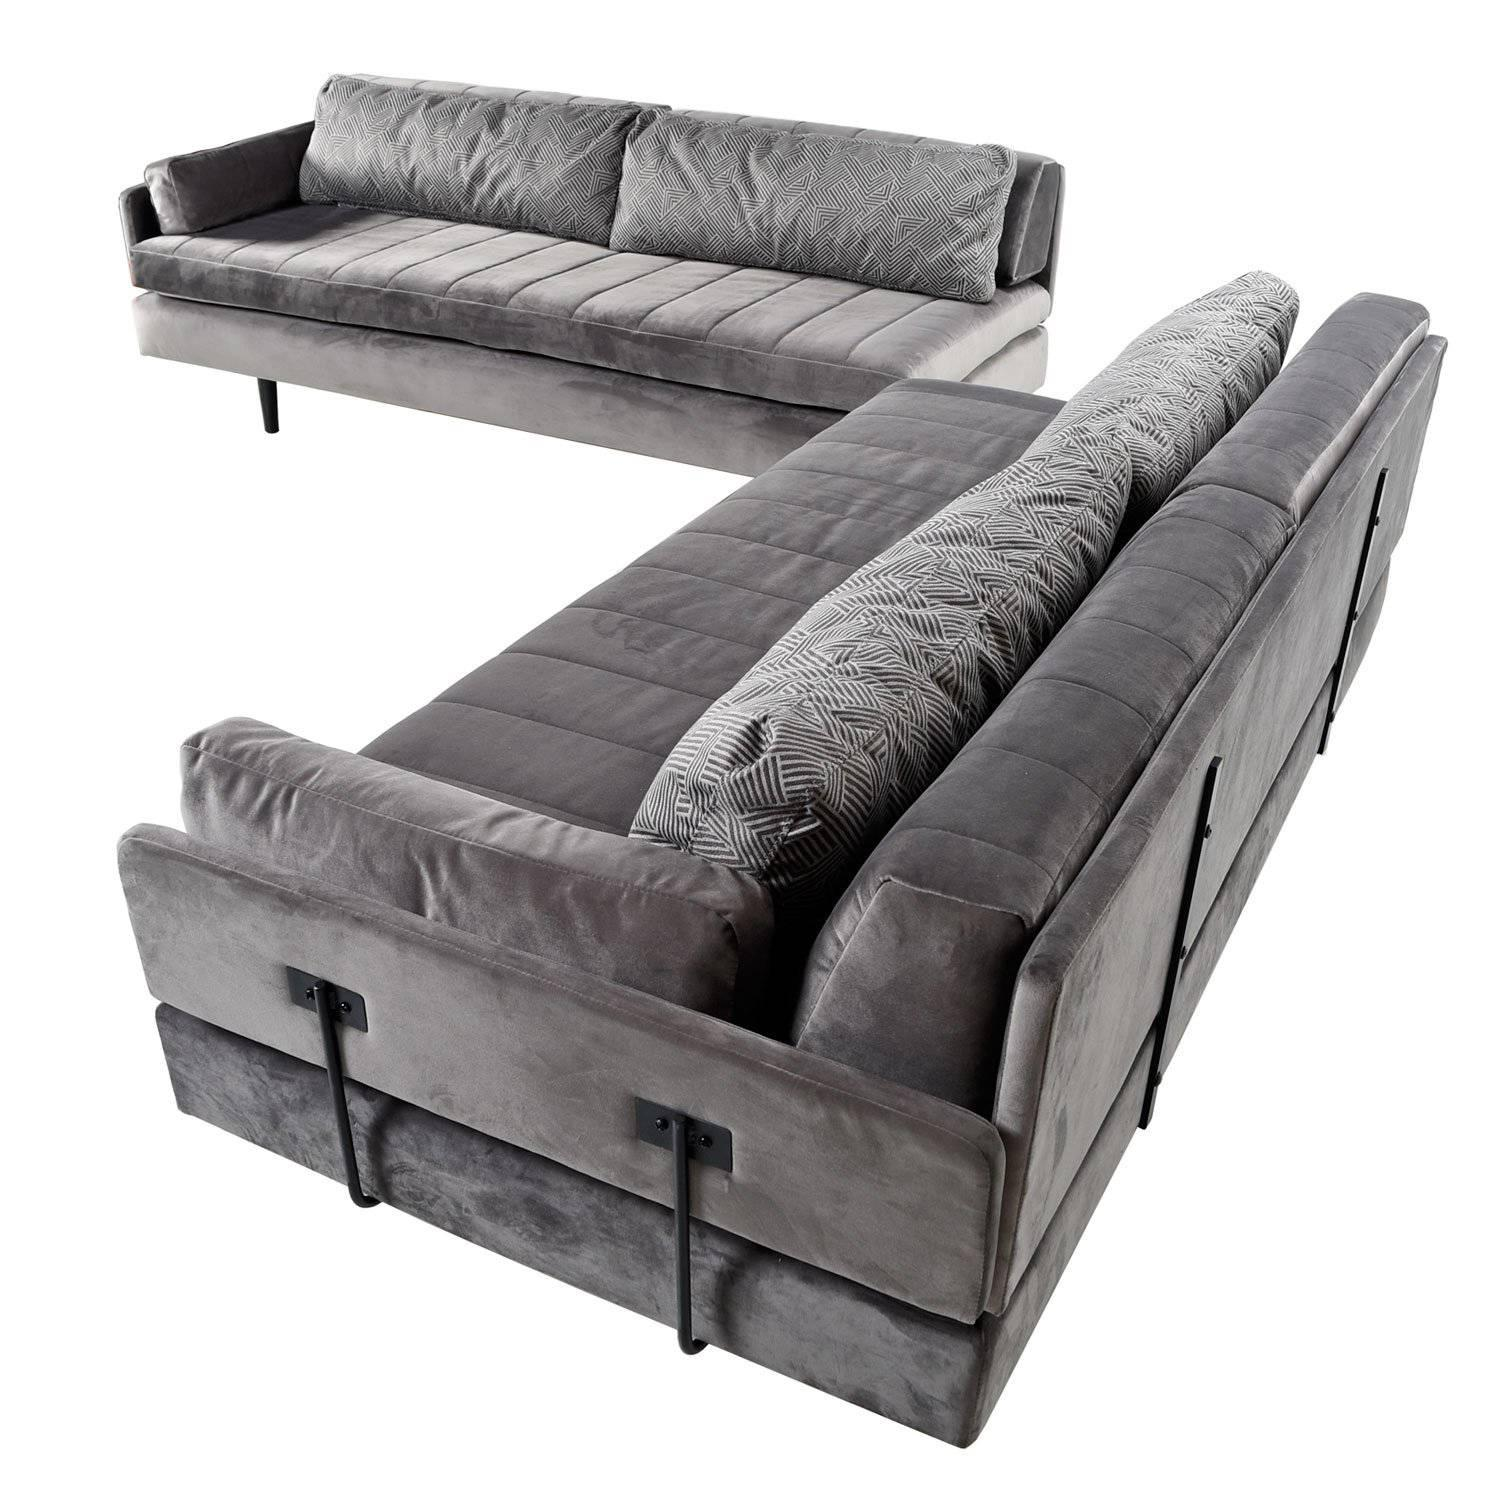 CustomMade Modular Grey Velvet Daybed Sofa Set 1960s For Sale at